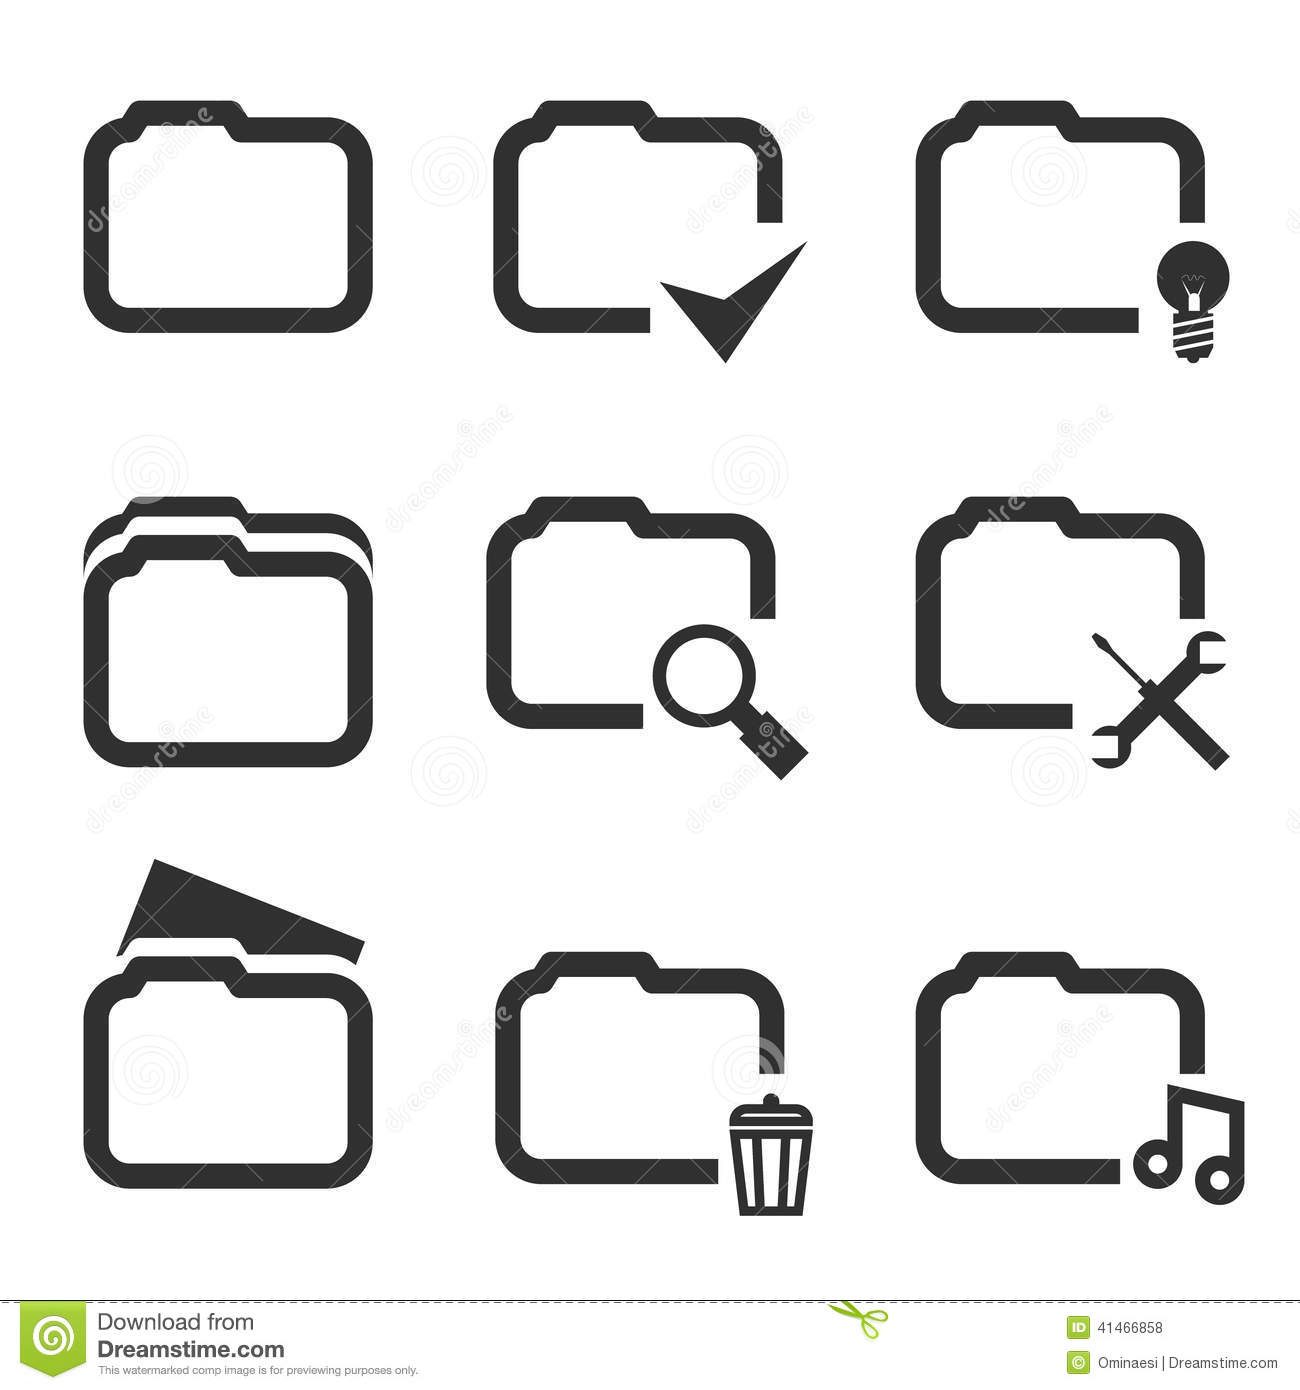 Folder Silhouette Icons Set Isolated On White Stock Vector.